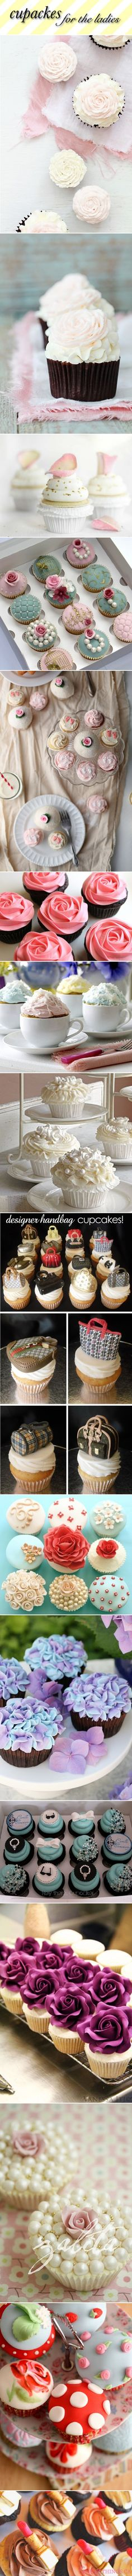 chic little cupcakes!